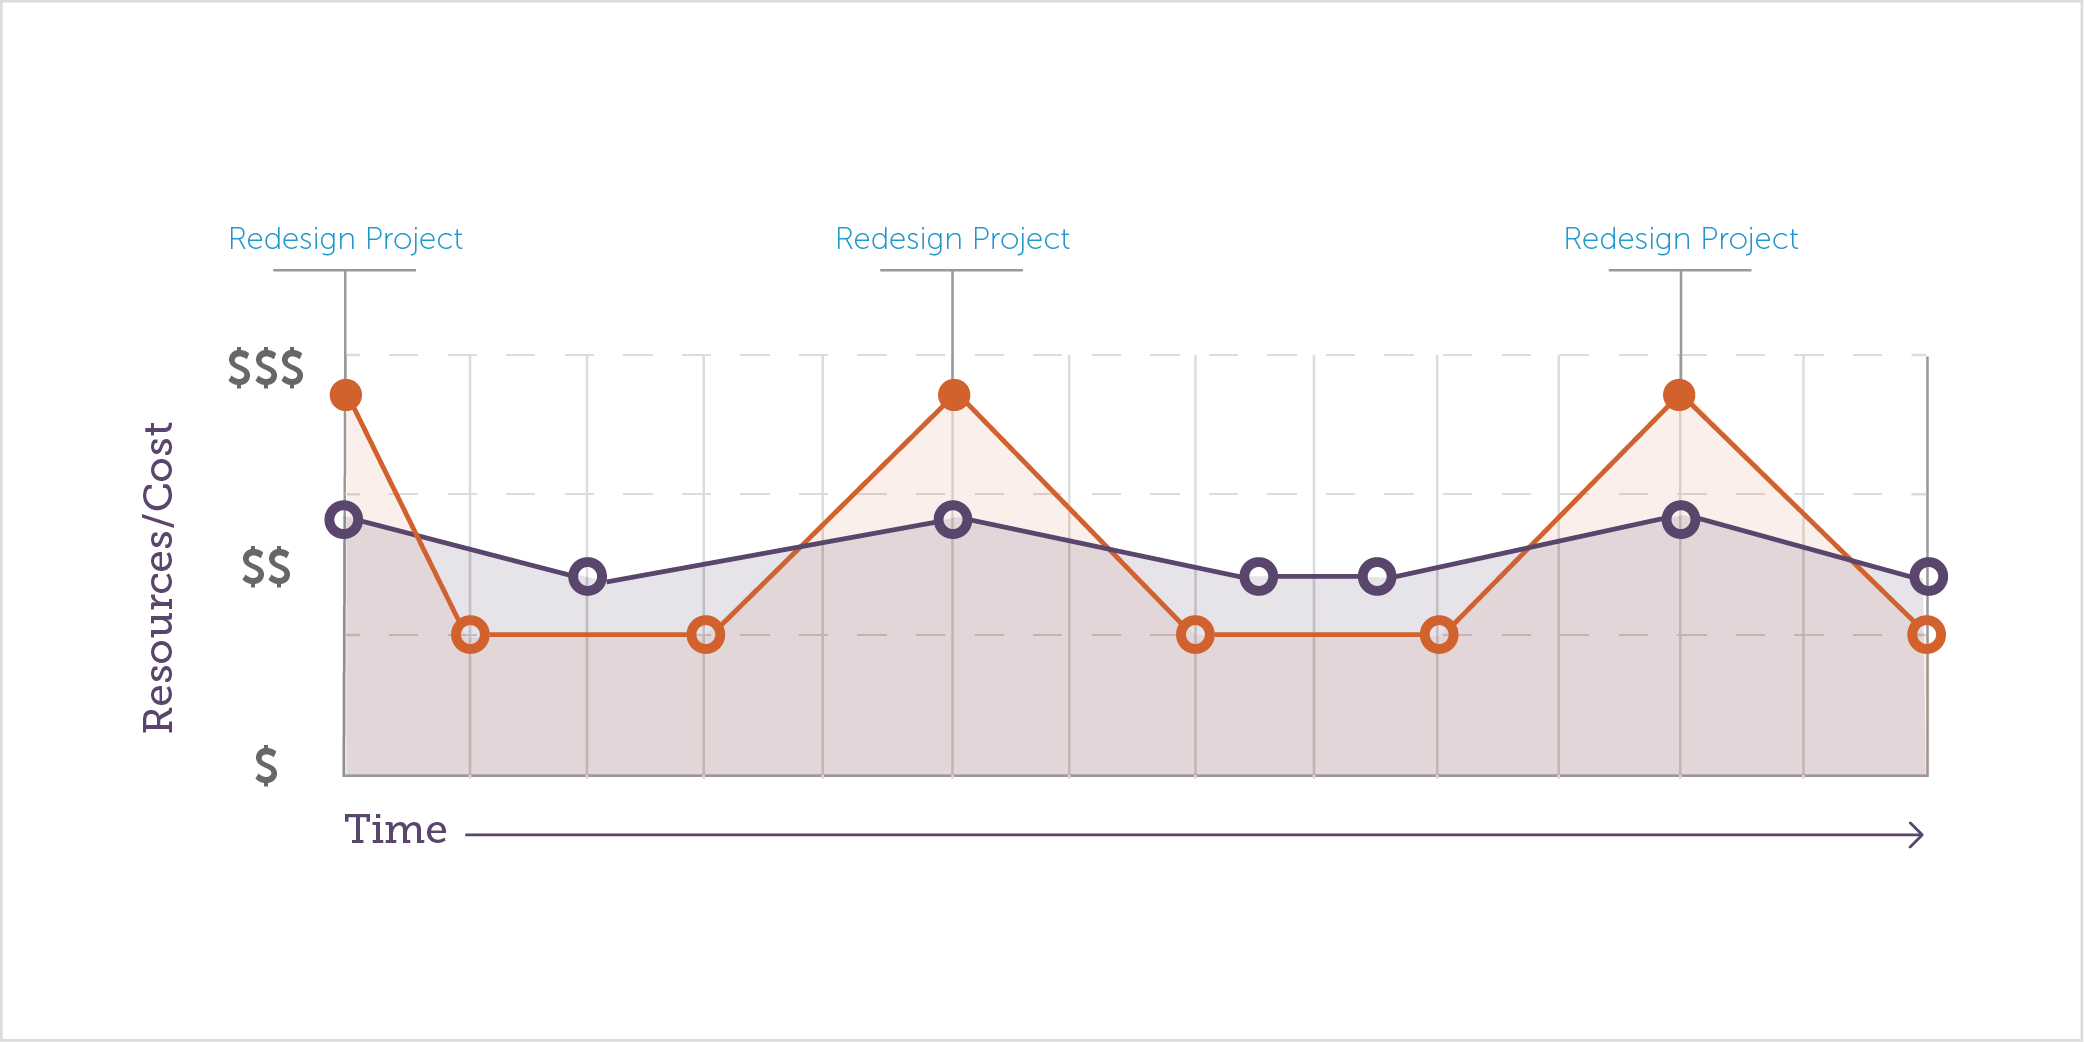 Line chart shows a more level allocation of resources between redesign projects for agile compared to the highs and lows of a waterfall approach